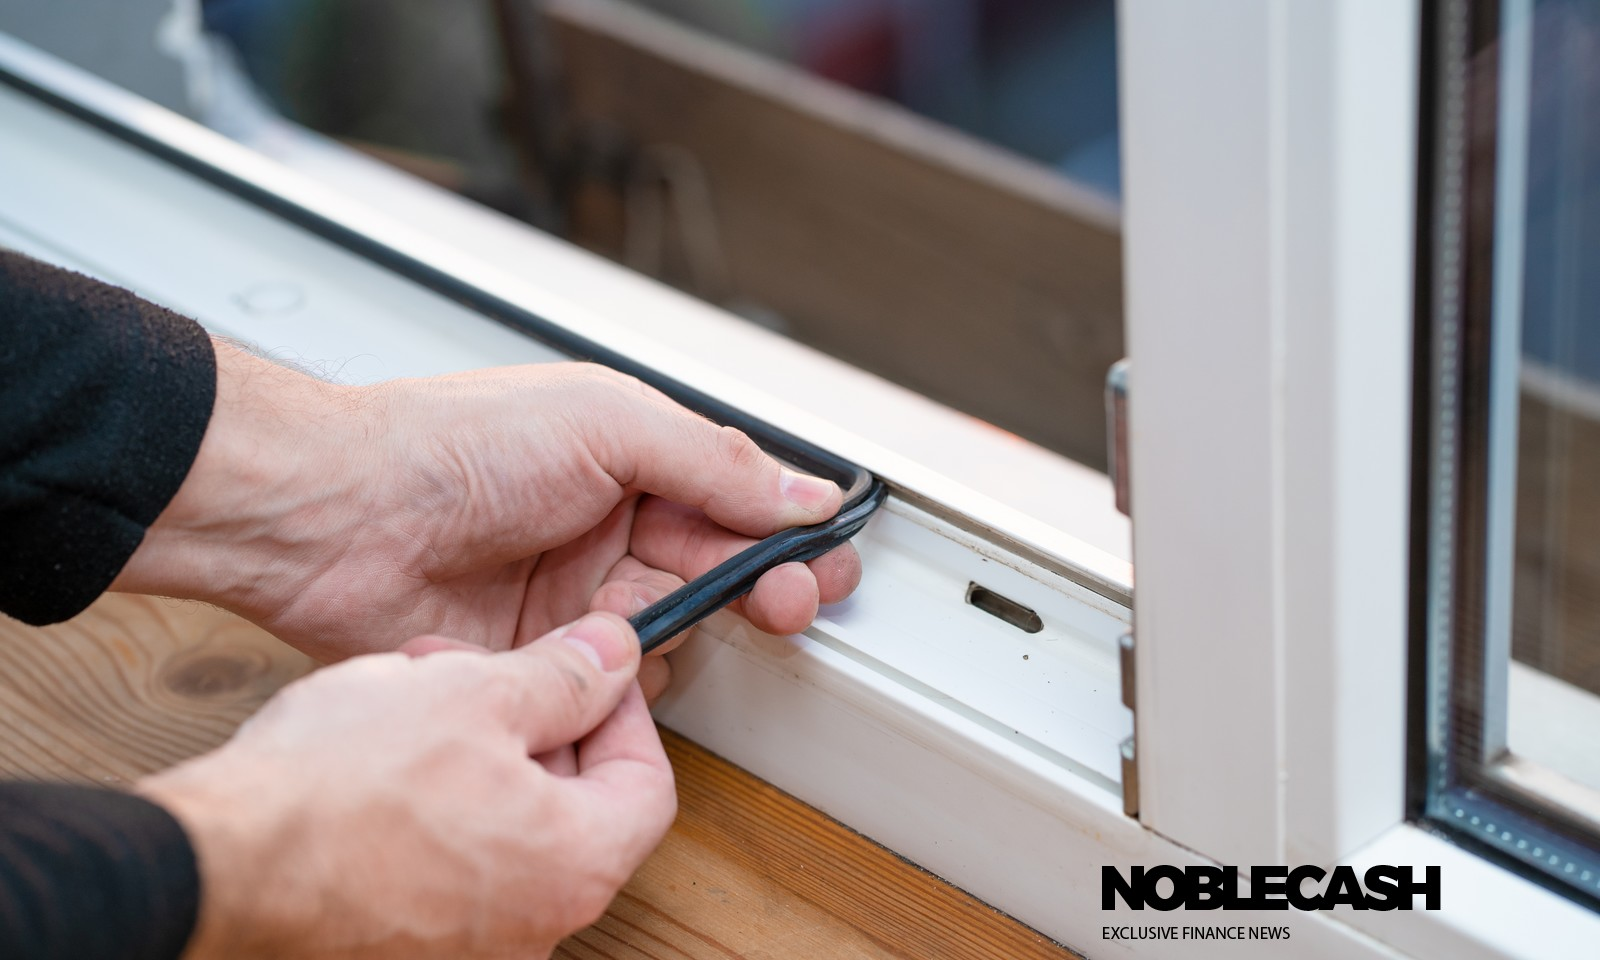 Professional master at repair and installation of windows, changes rubber seal gasket in pvc windows